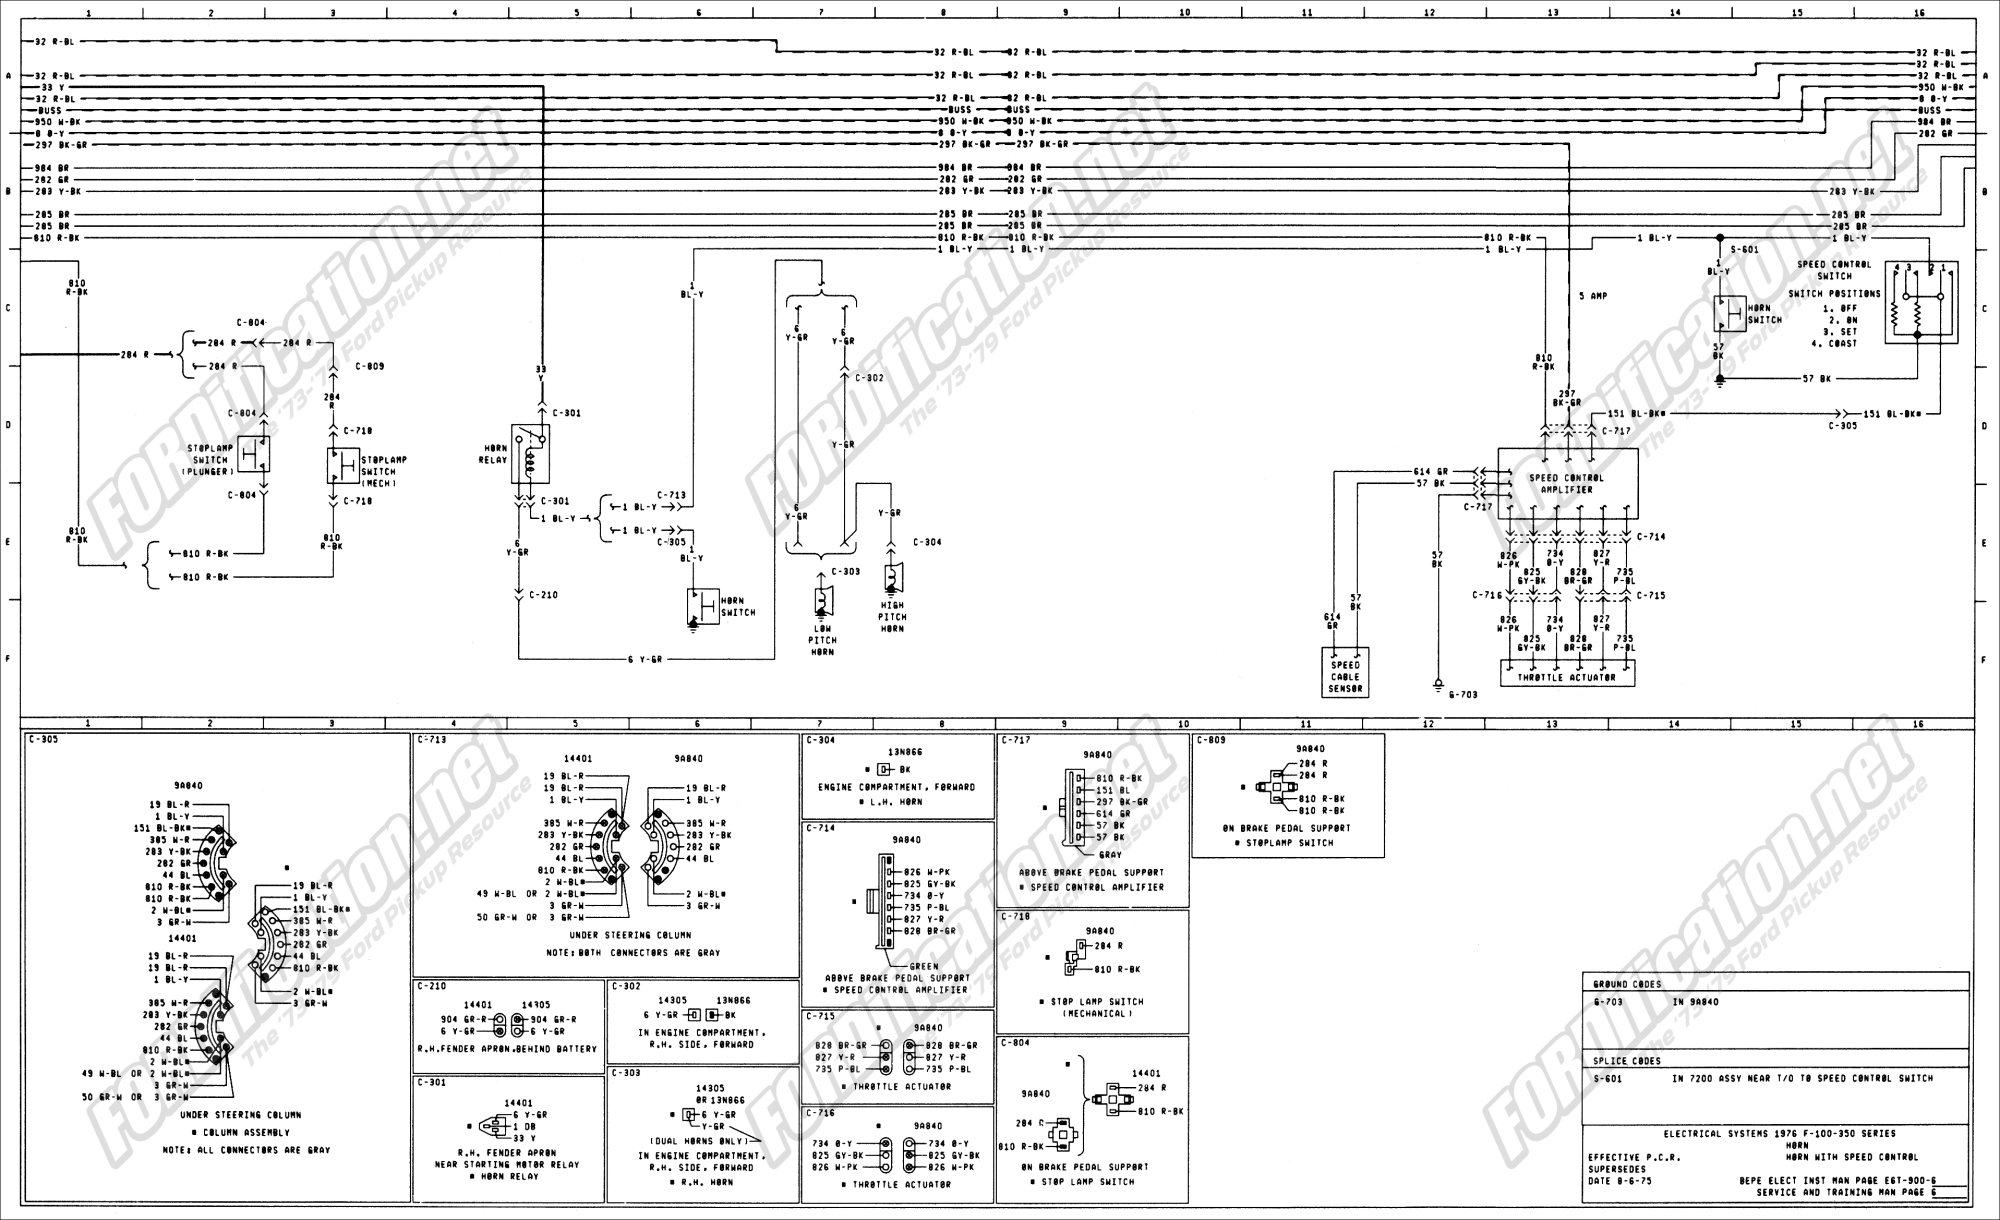 hight resolution of 1973 1979 ford truck wiring diagrams schematics fordification net 1976 ford f250 starter solenoid wiring diagram 1976 ford f250 wiring diagram